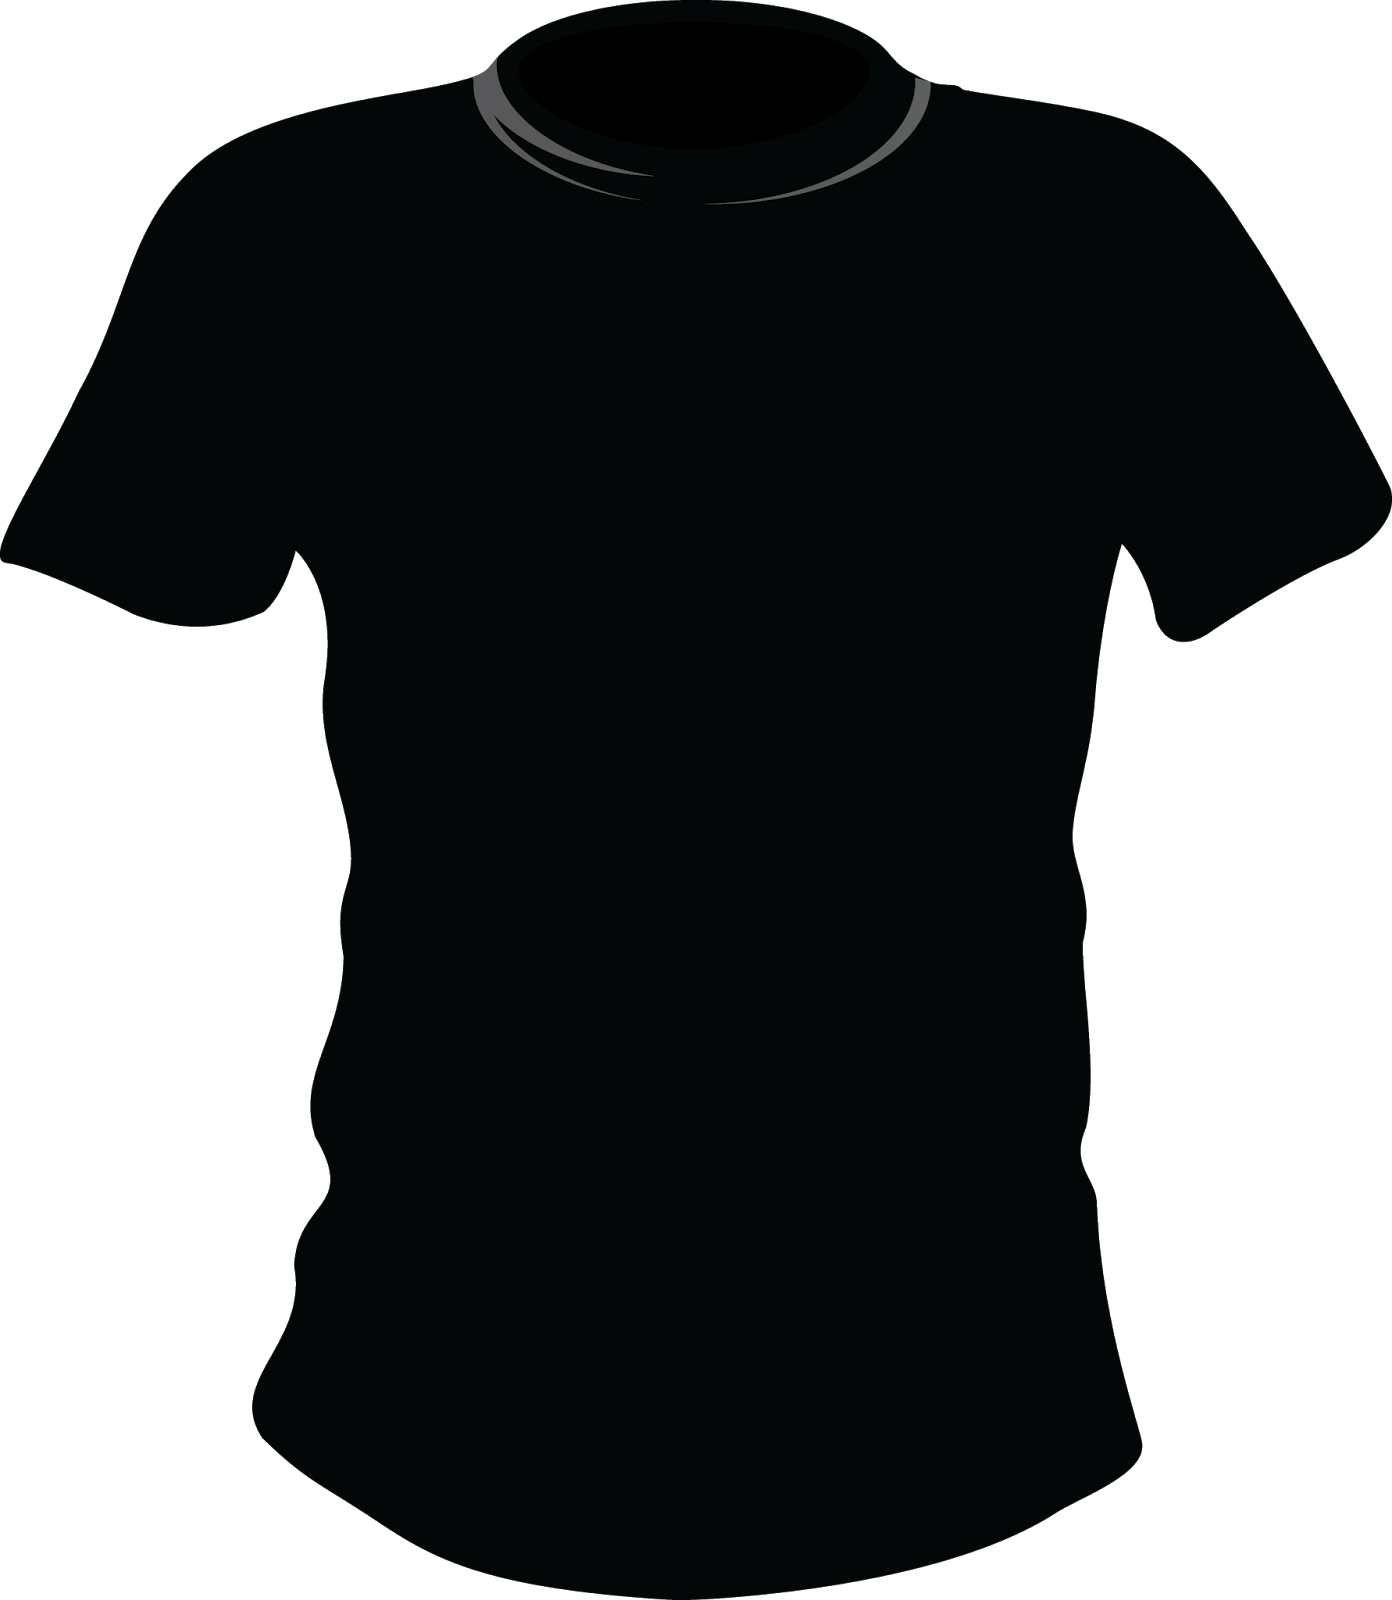 black t shirt vector - photo #7